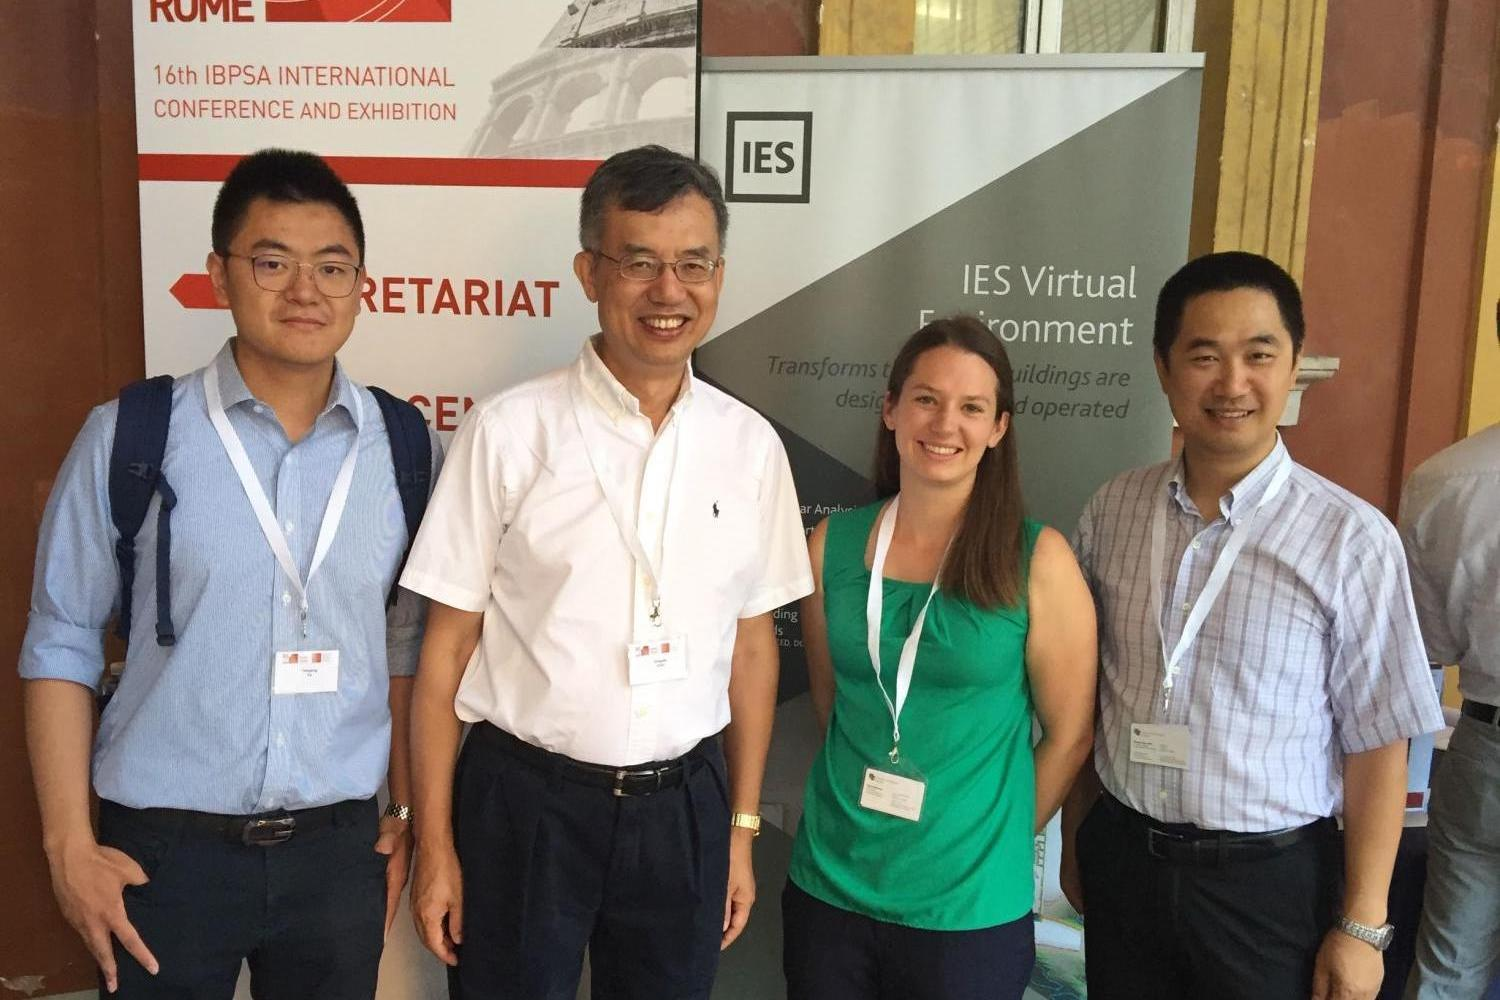 Yunyang, Katy and Dr. Zuo present at the 2019 Building Simulation conference in Rome